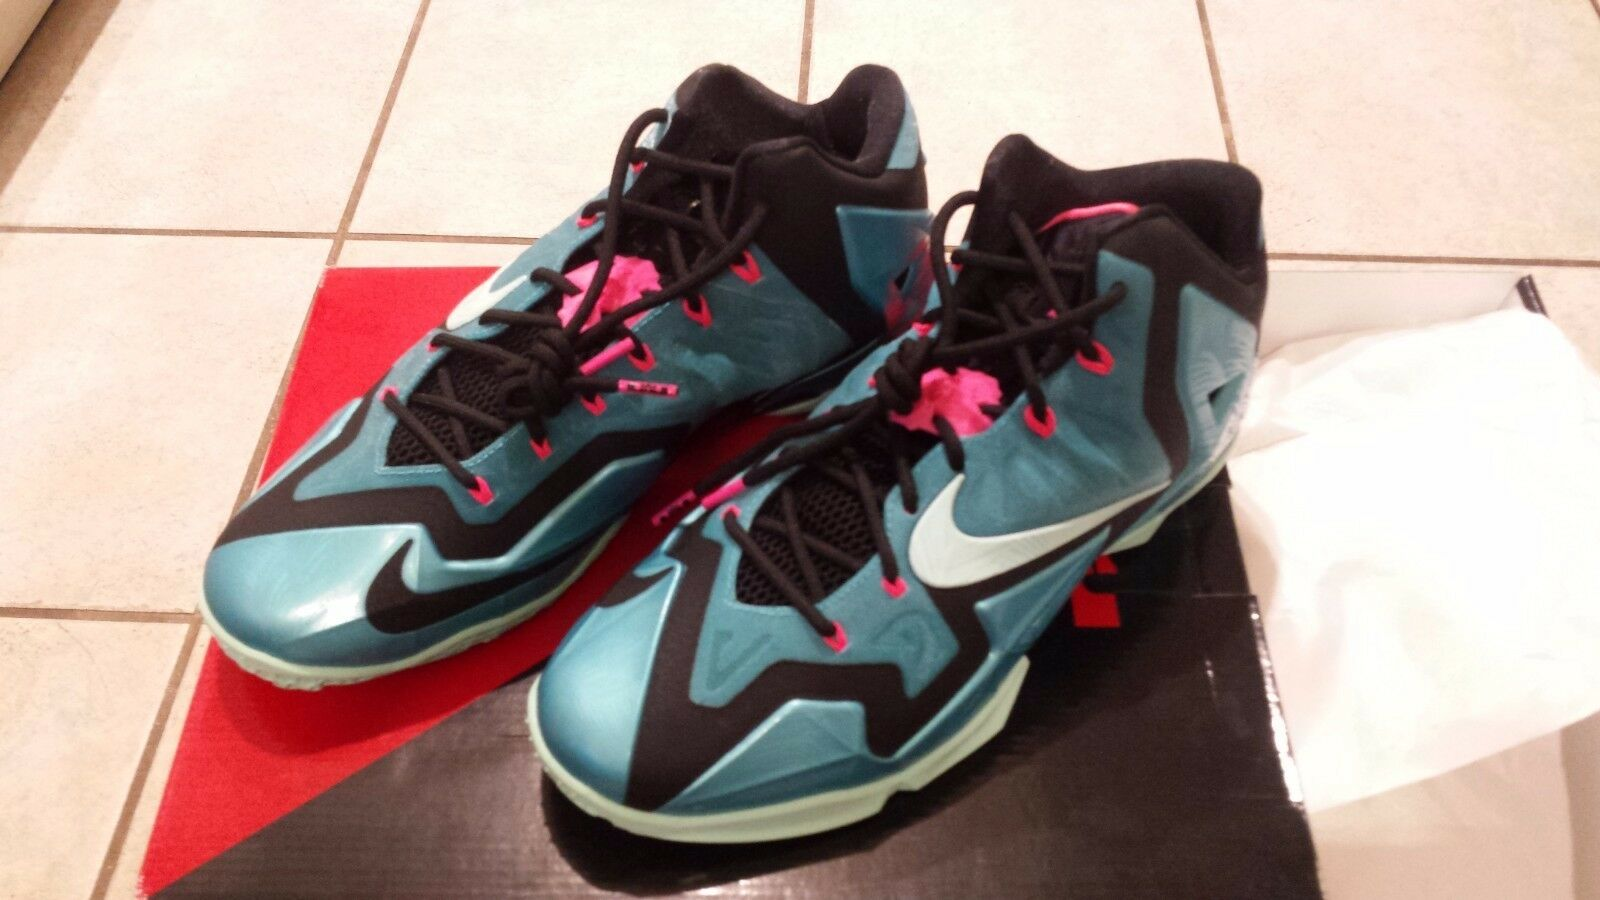 Lebron 11 South Beach size 12